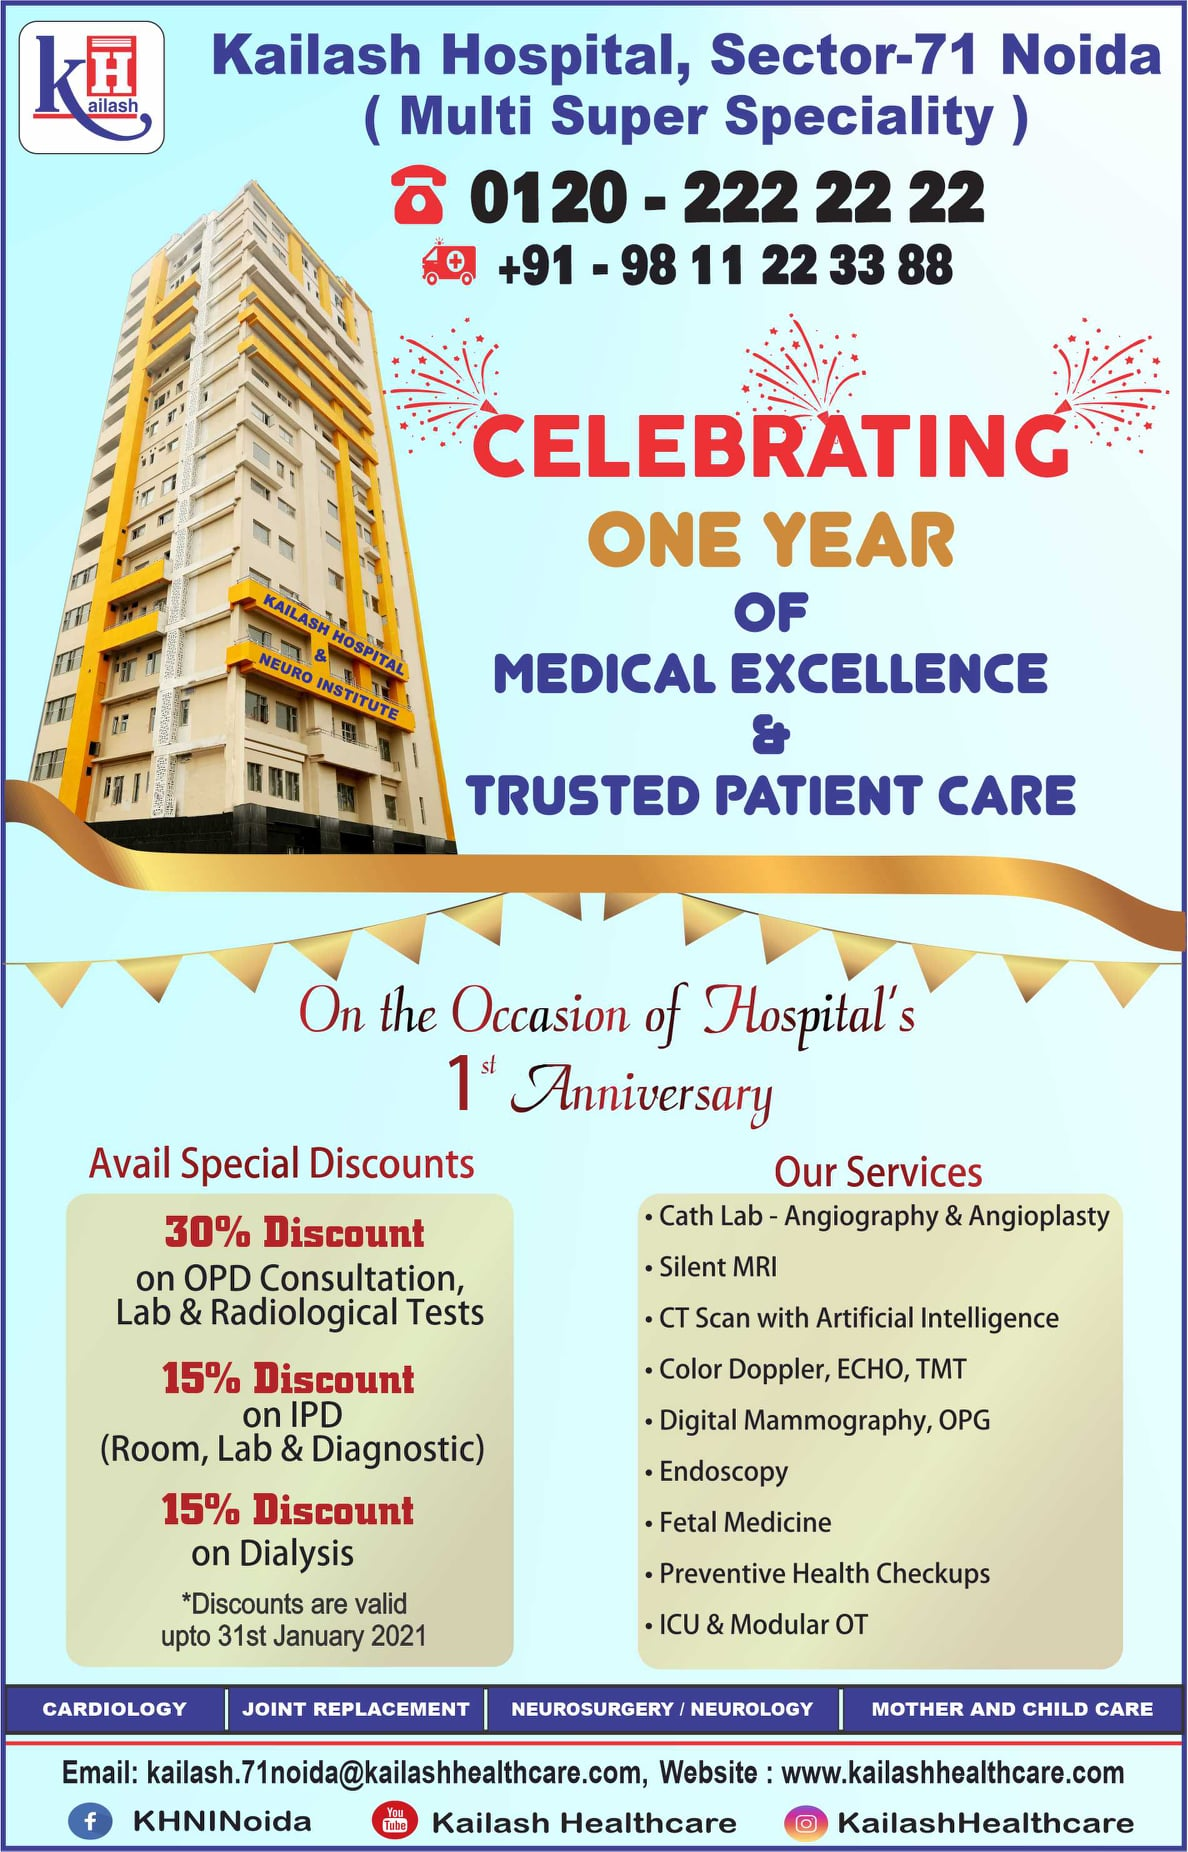 Kailash Hospital & Neuro Institute, Sec- 71 Noida celebrates its 1st Anniversary today with completing one year of Trusted & Exclusive Medical Excellence.